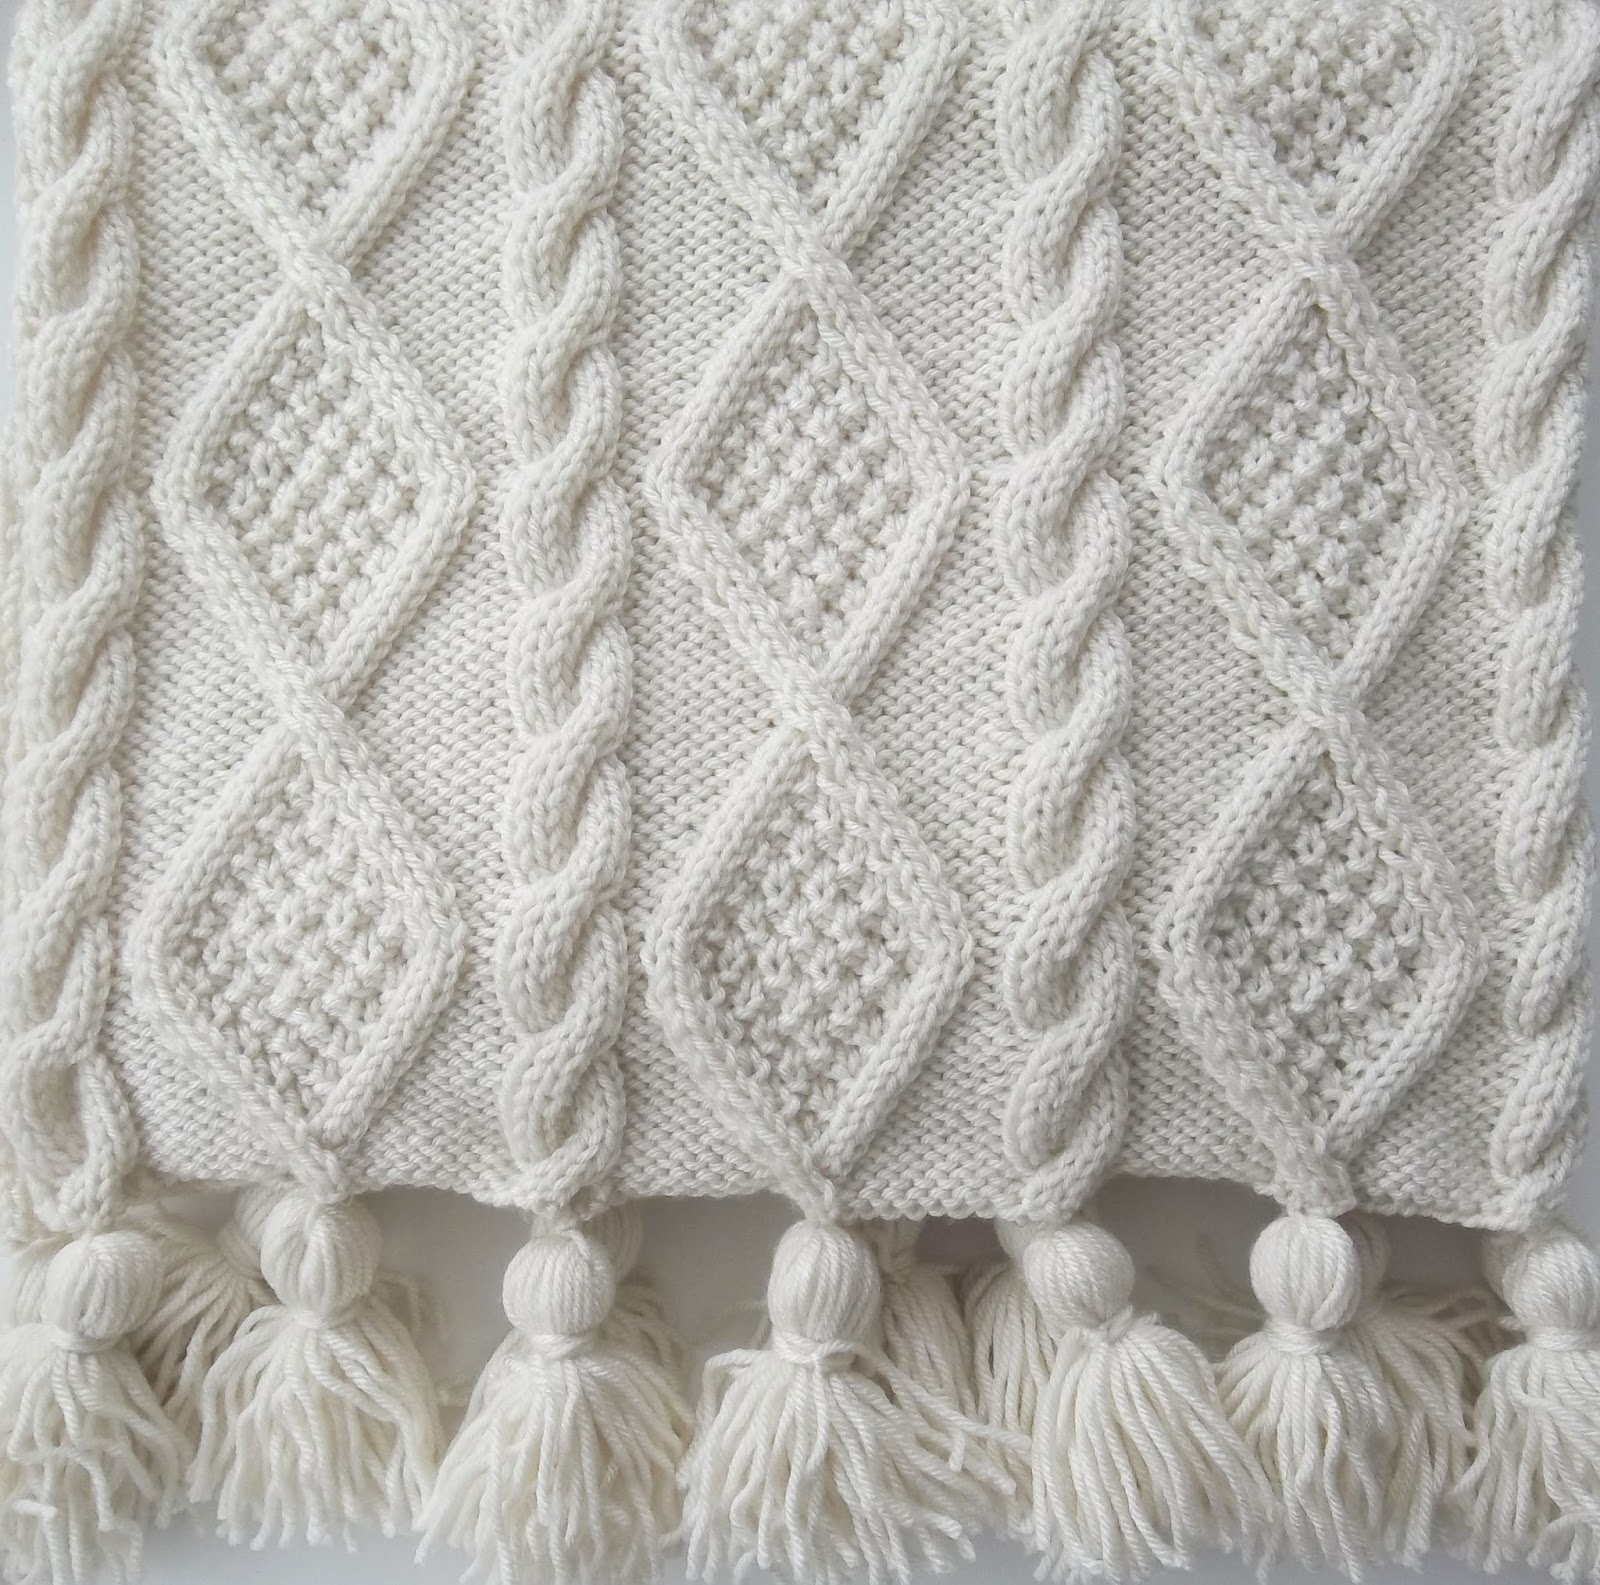 Knitting cable scarf pattern